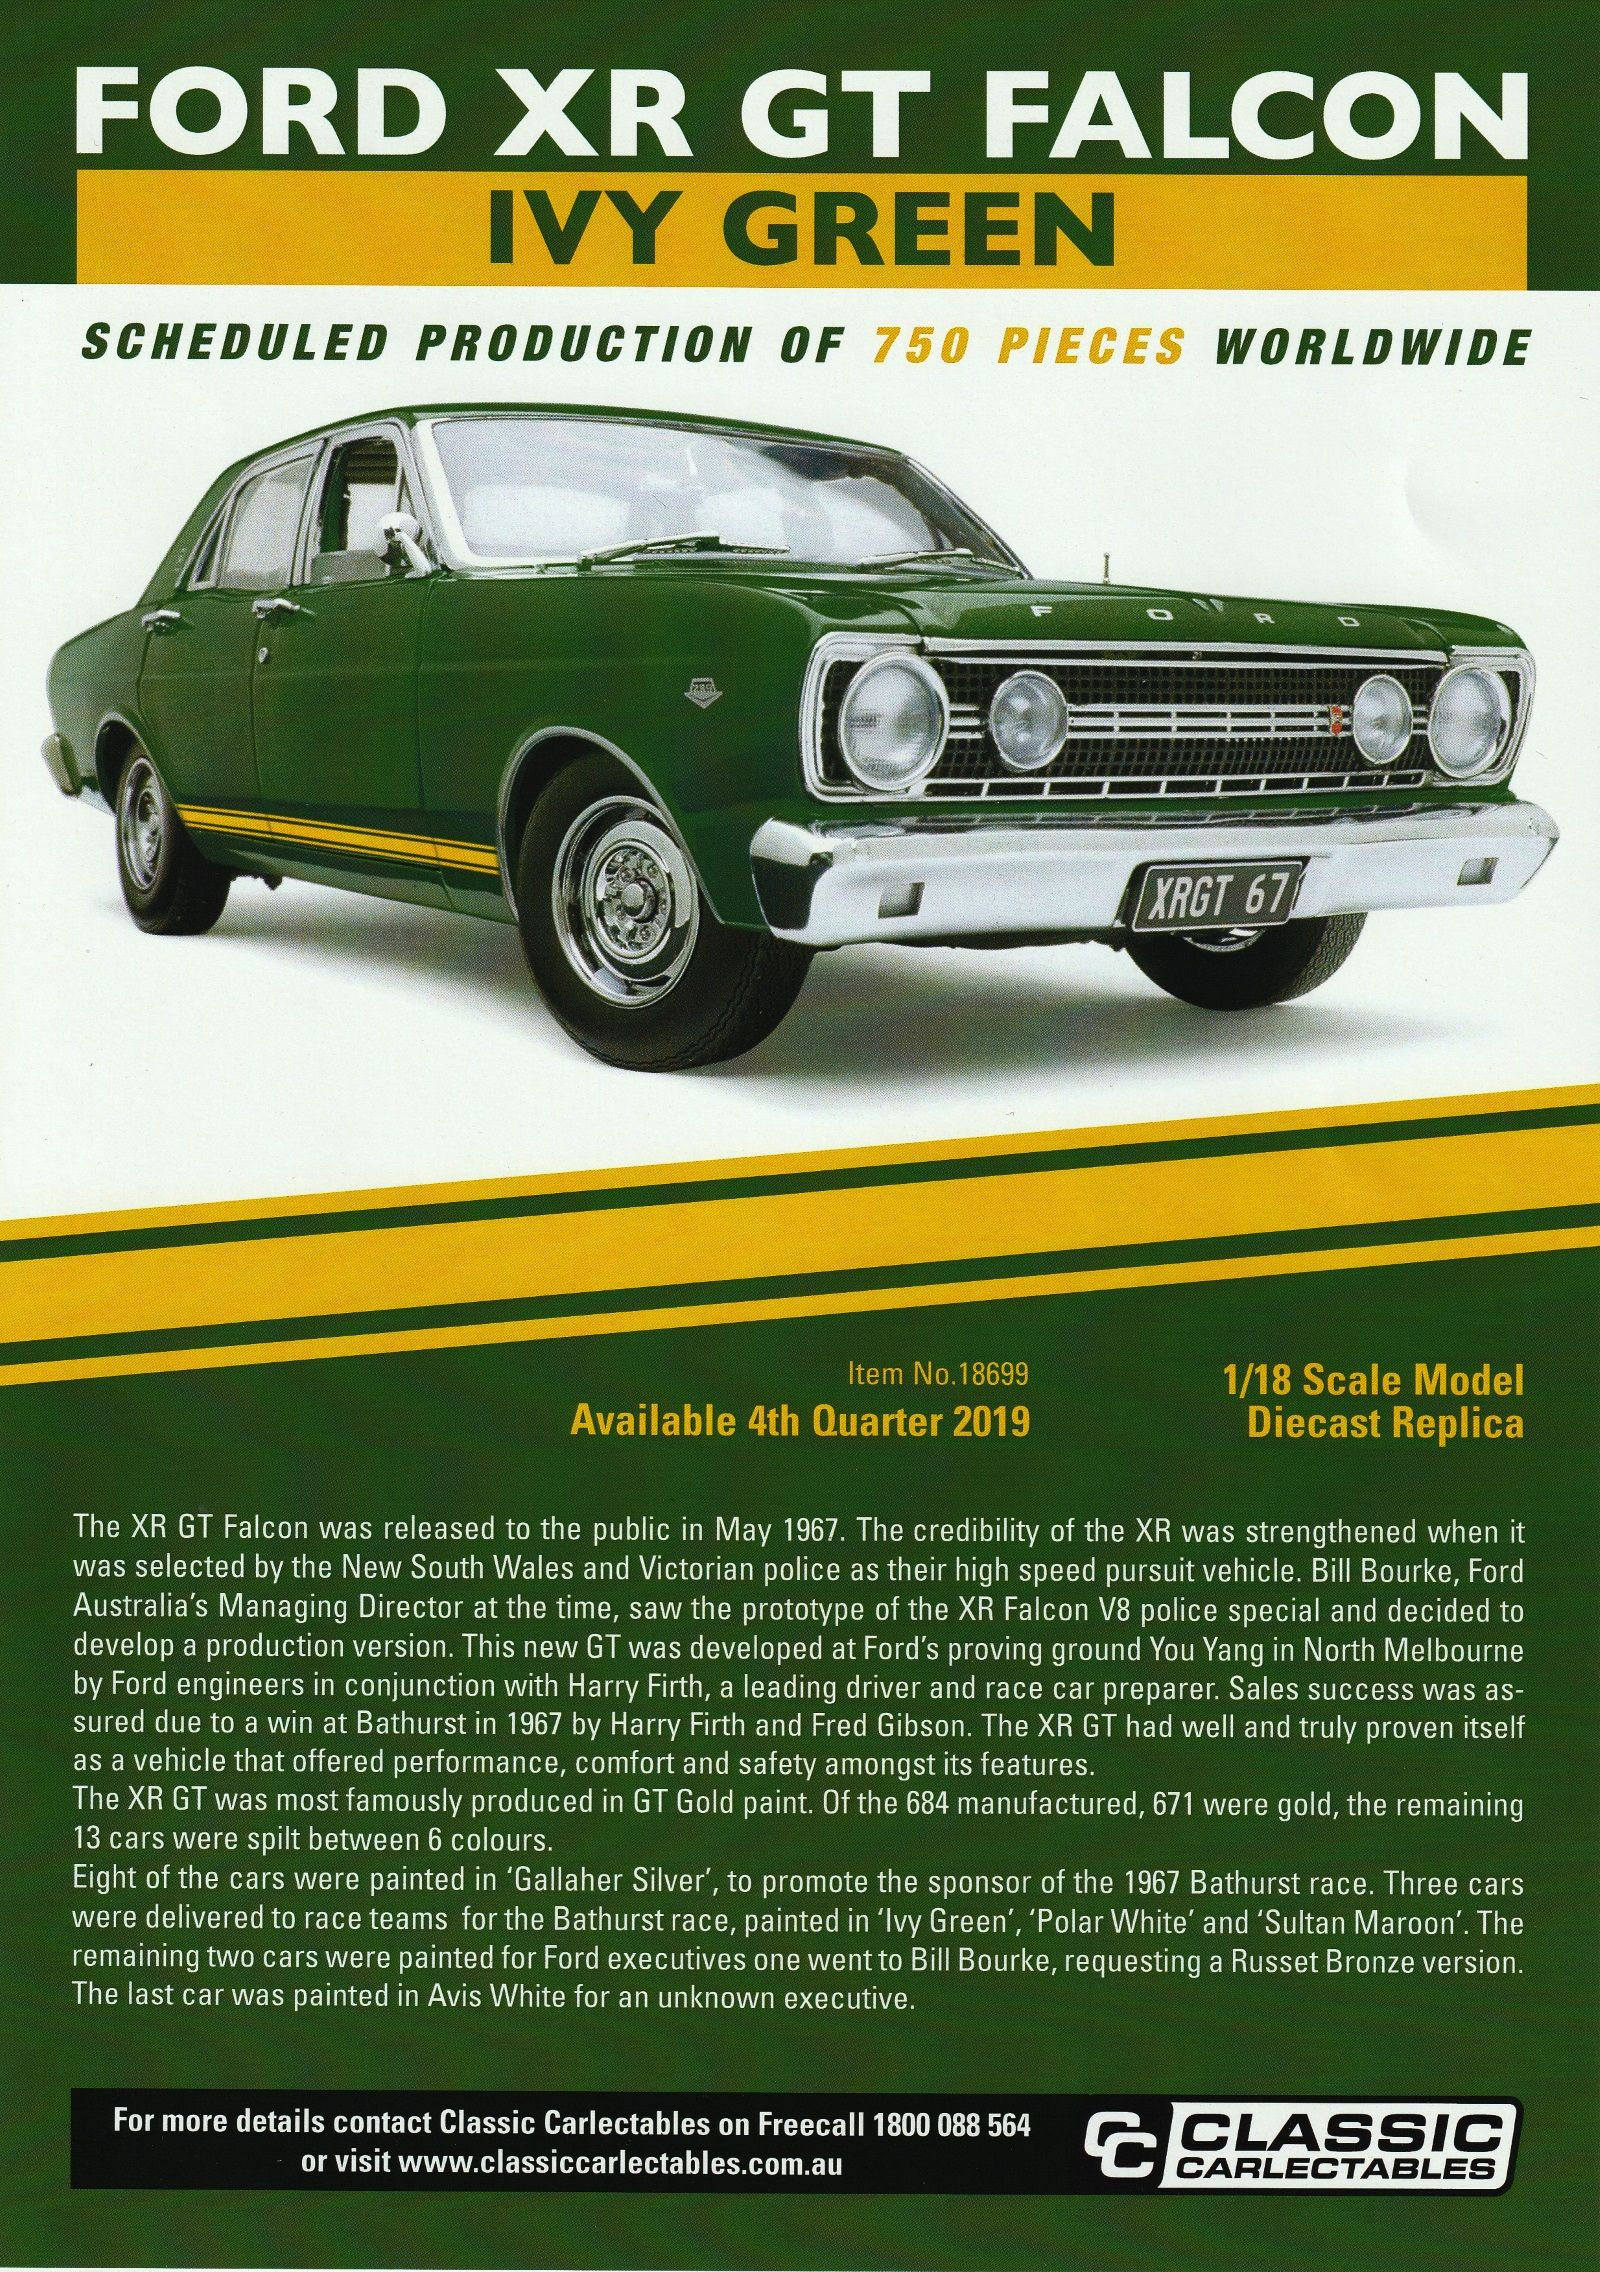 Ford Xr Gt Falcon In Ivy Green Australian Muscle Cars Ford Falcon